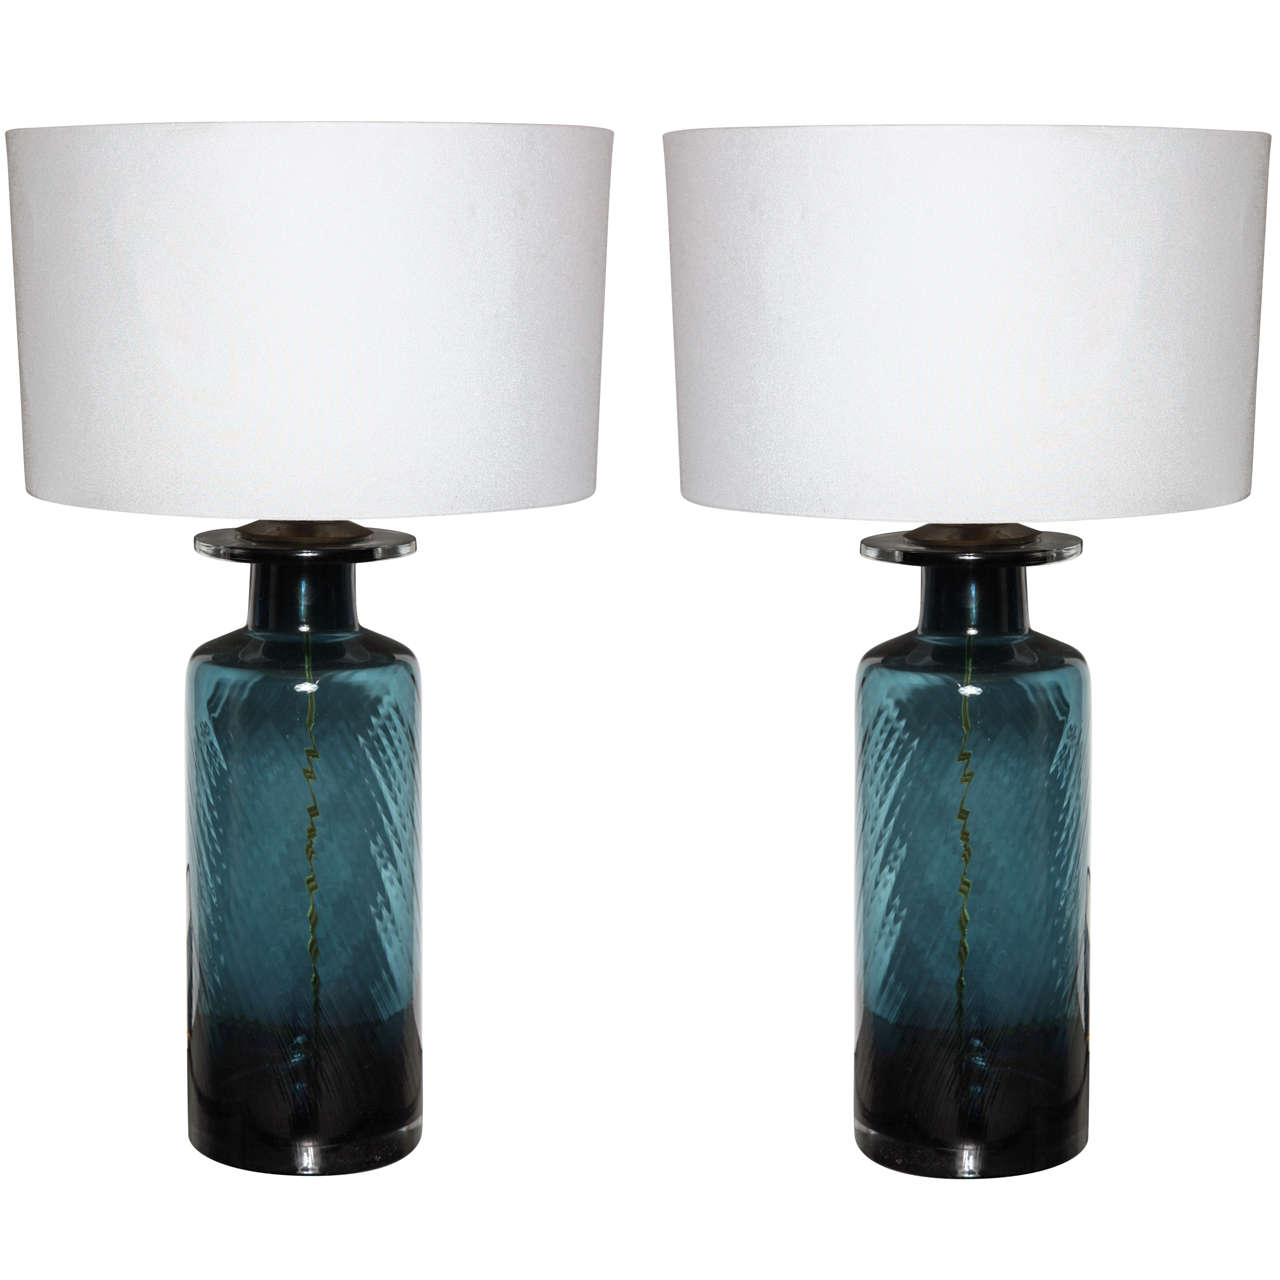 Teal Table Lamps: Pair of Teal Blue Murano Glass Table Lamps 1,Lighting